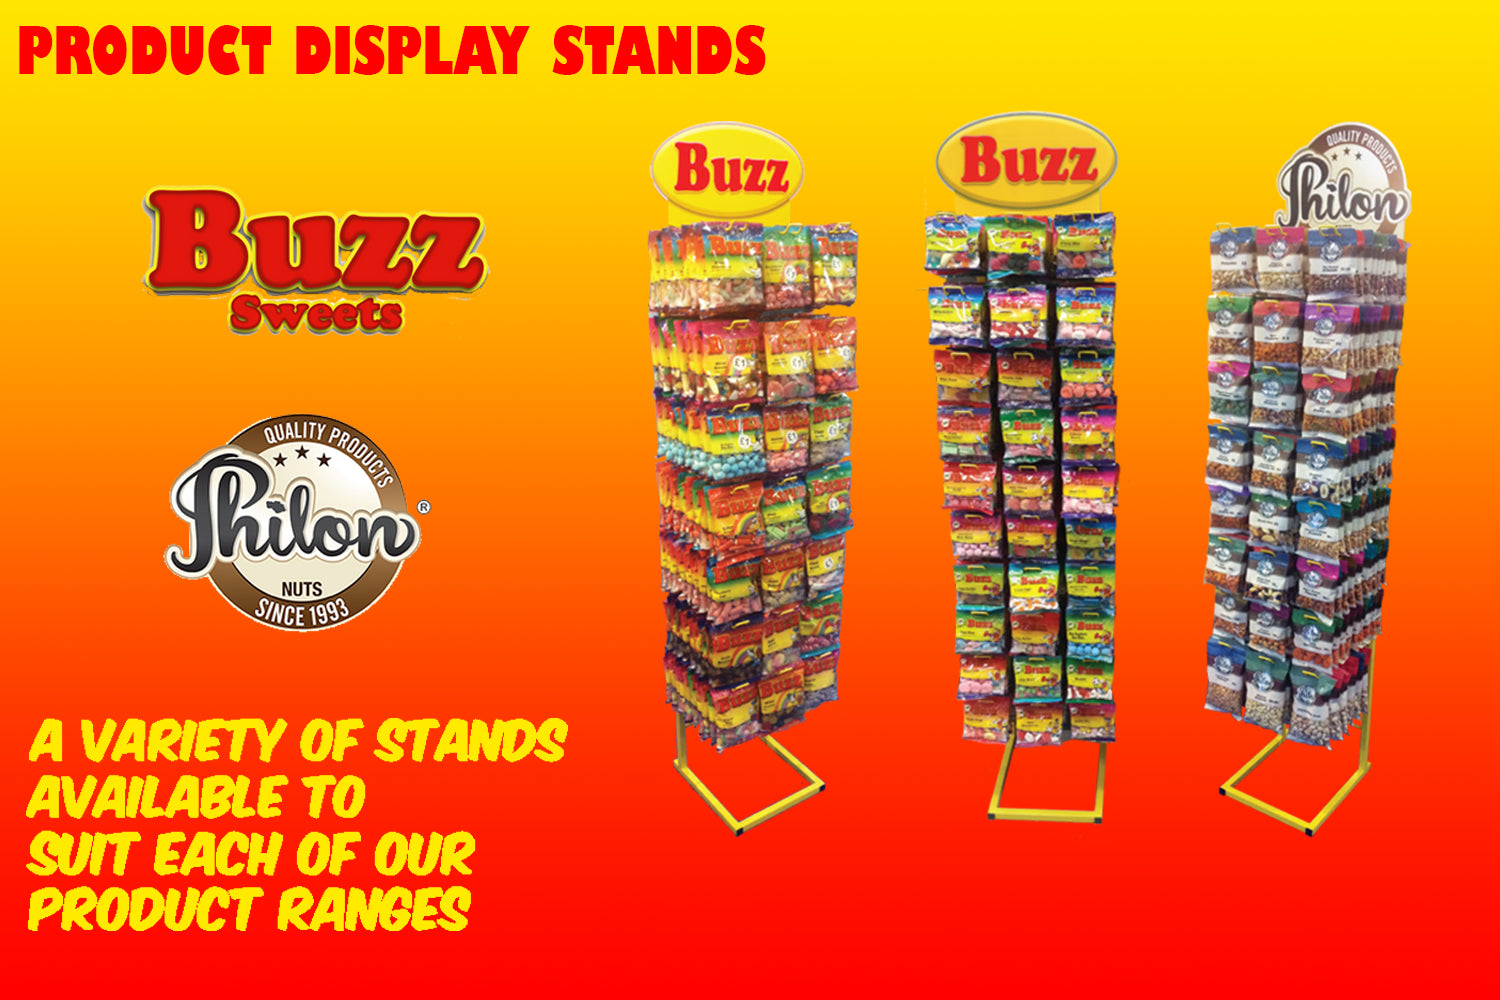 https:  www.buzzdirect.co.uk collections display-stands